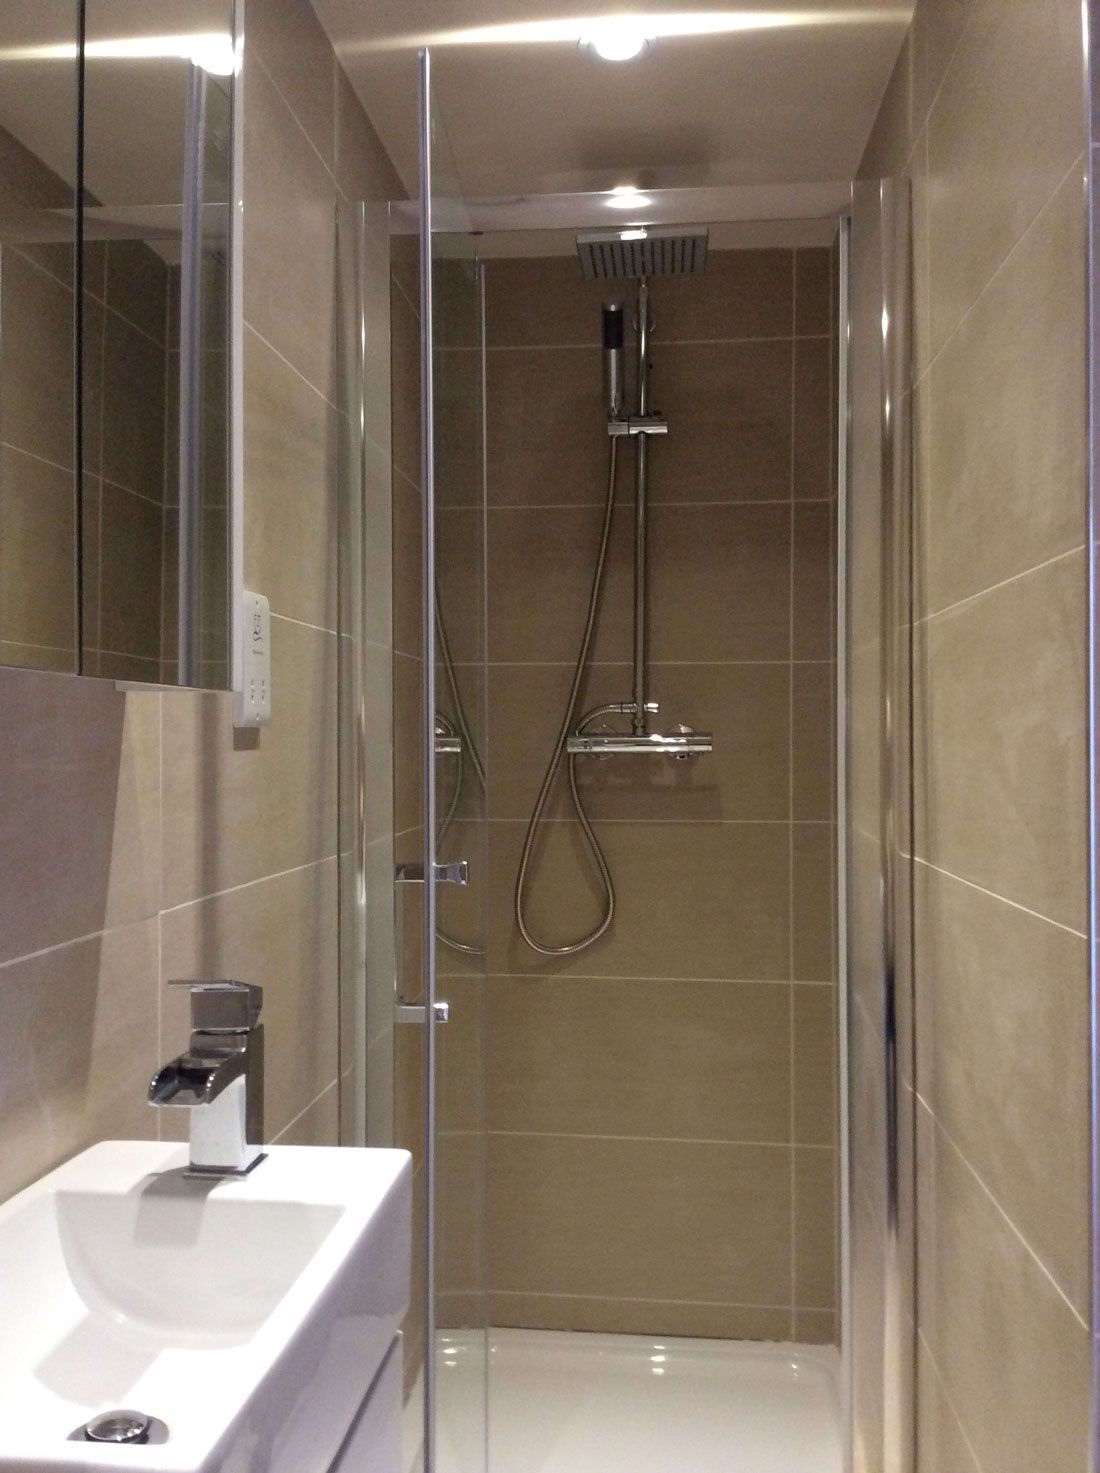 The En Suite Shower Room Is Fully Tiled In Dark Cream